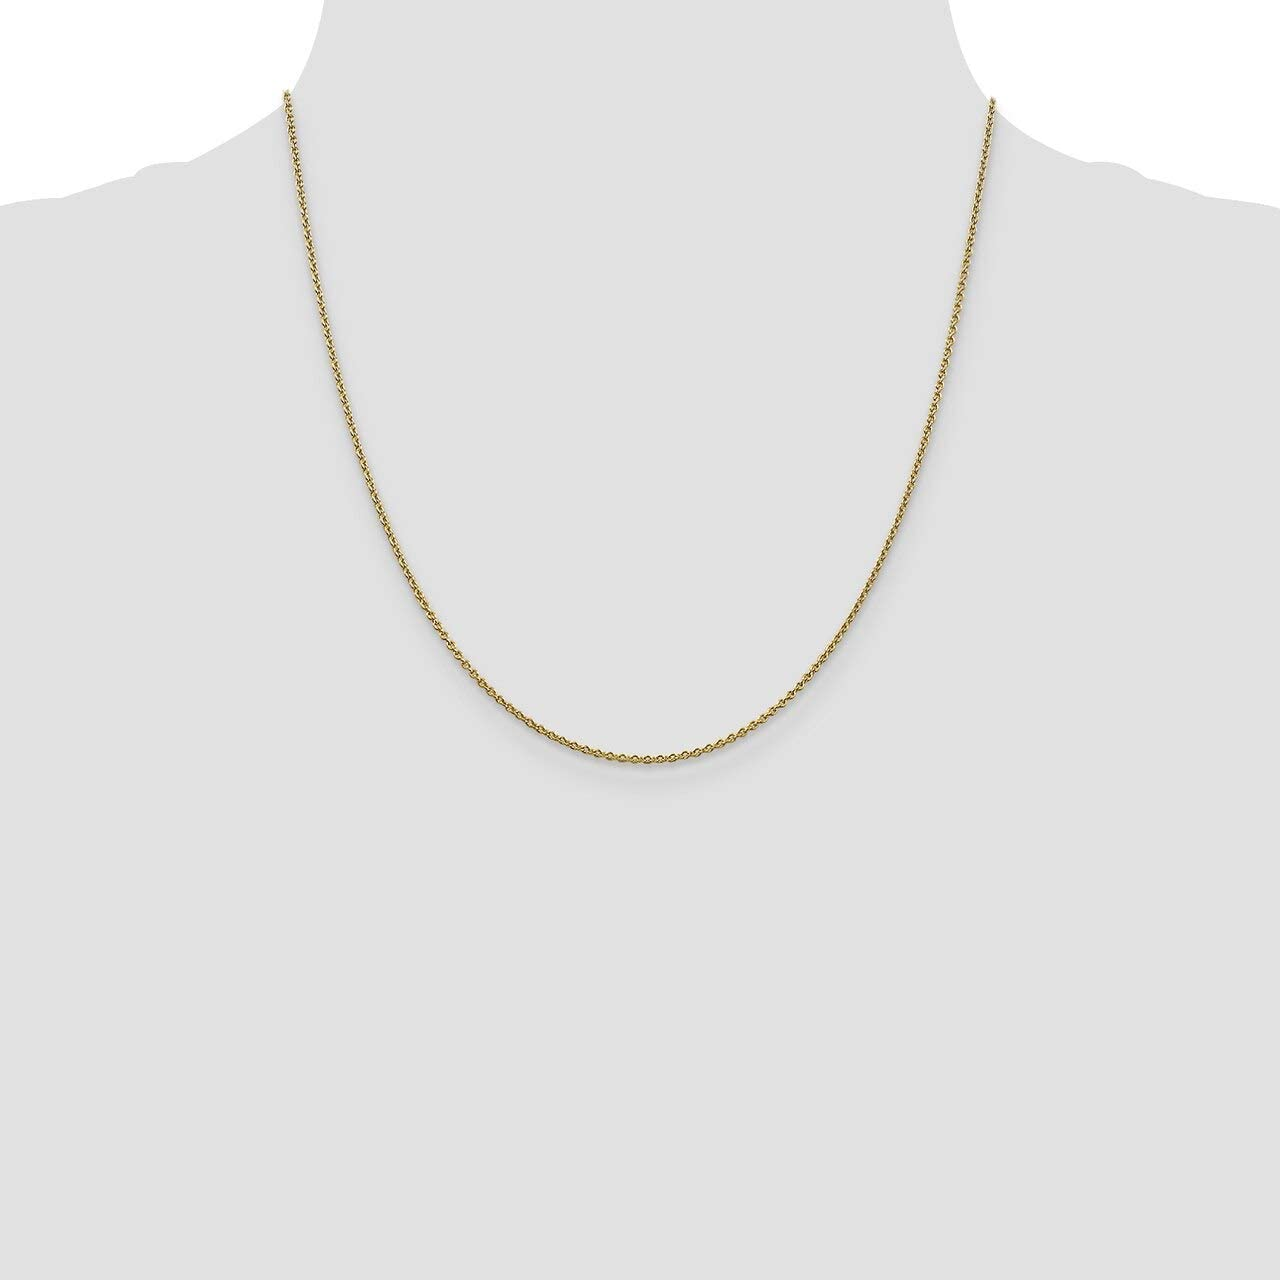 Lex /& Lu Leslies 14k Yellow Gold Round Cable Chain Necklace LAL92267